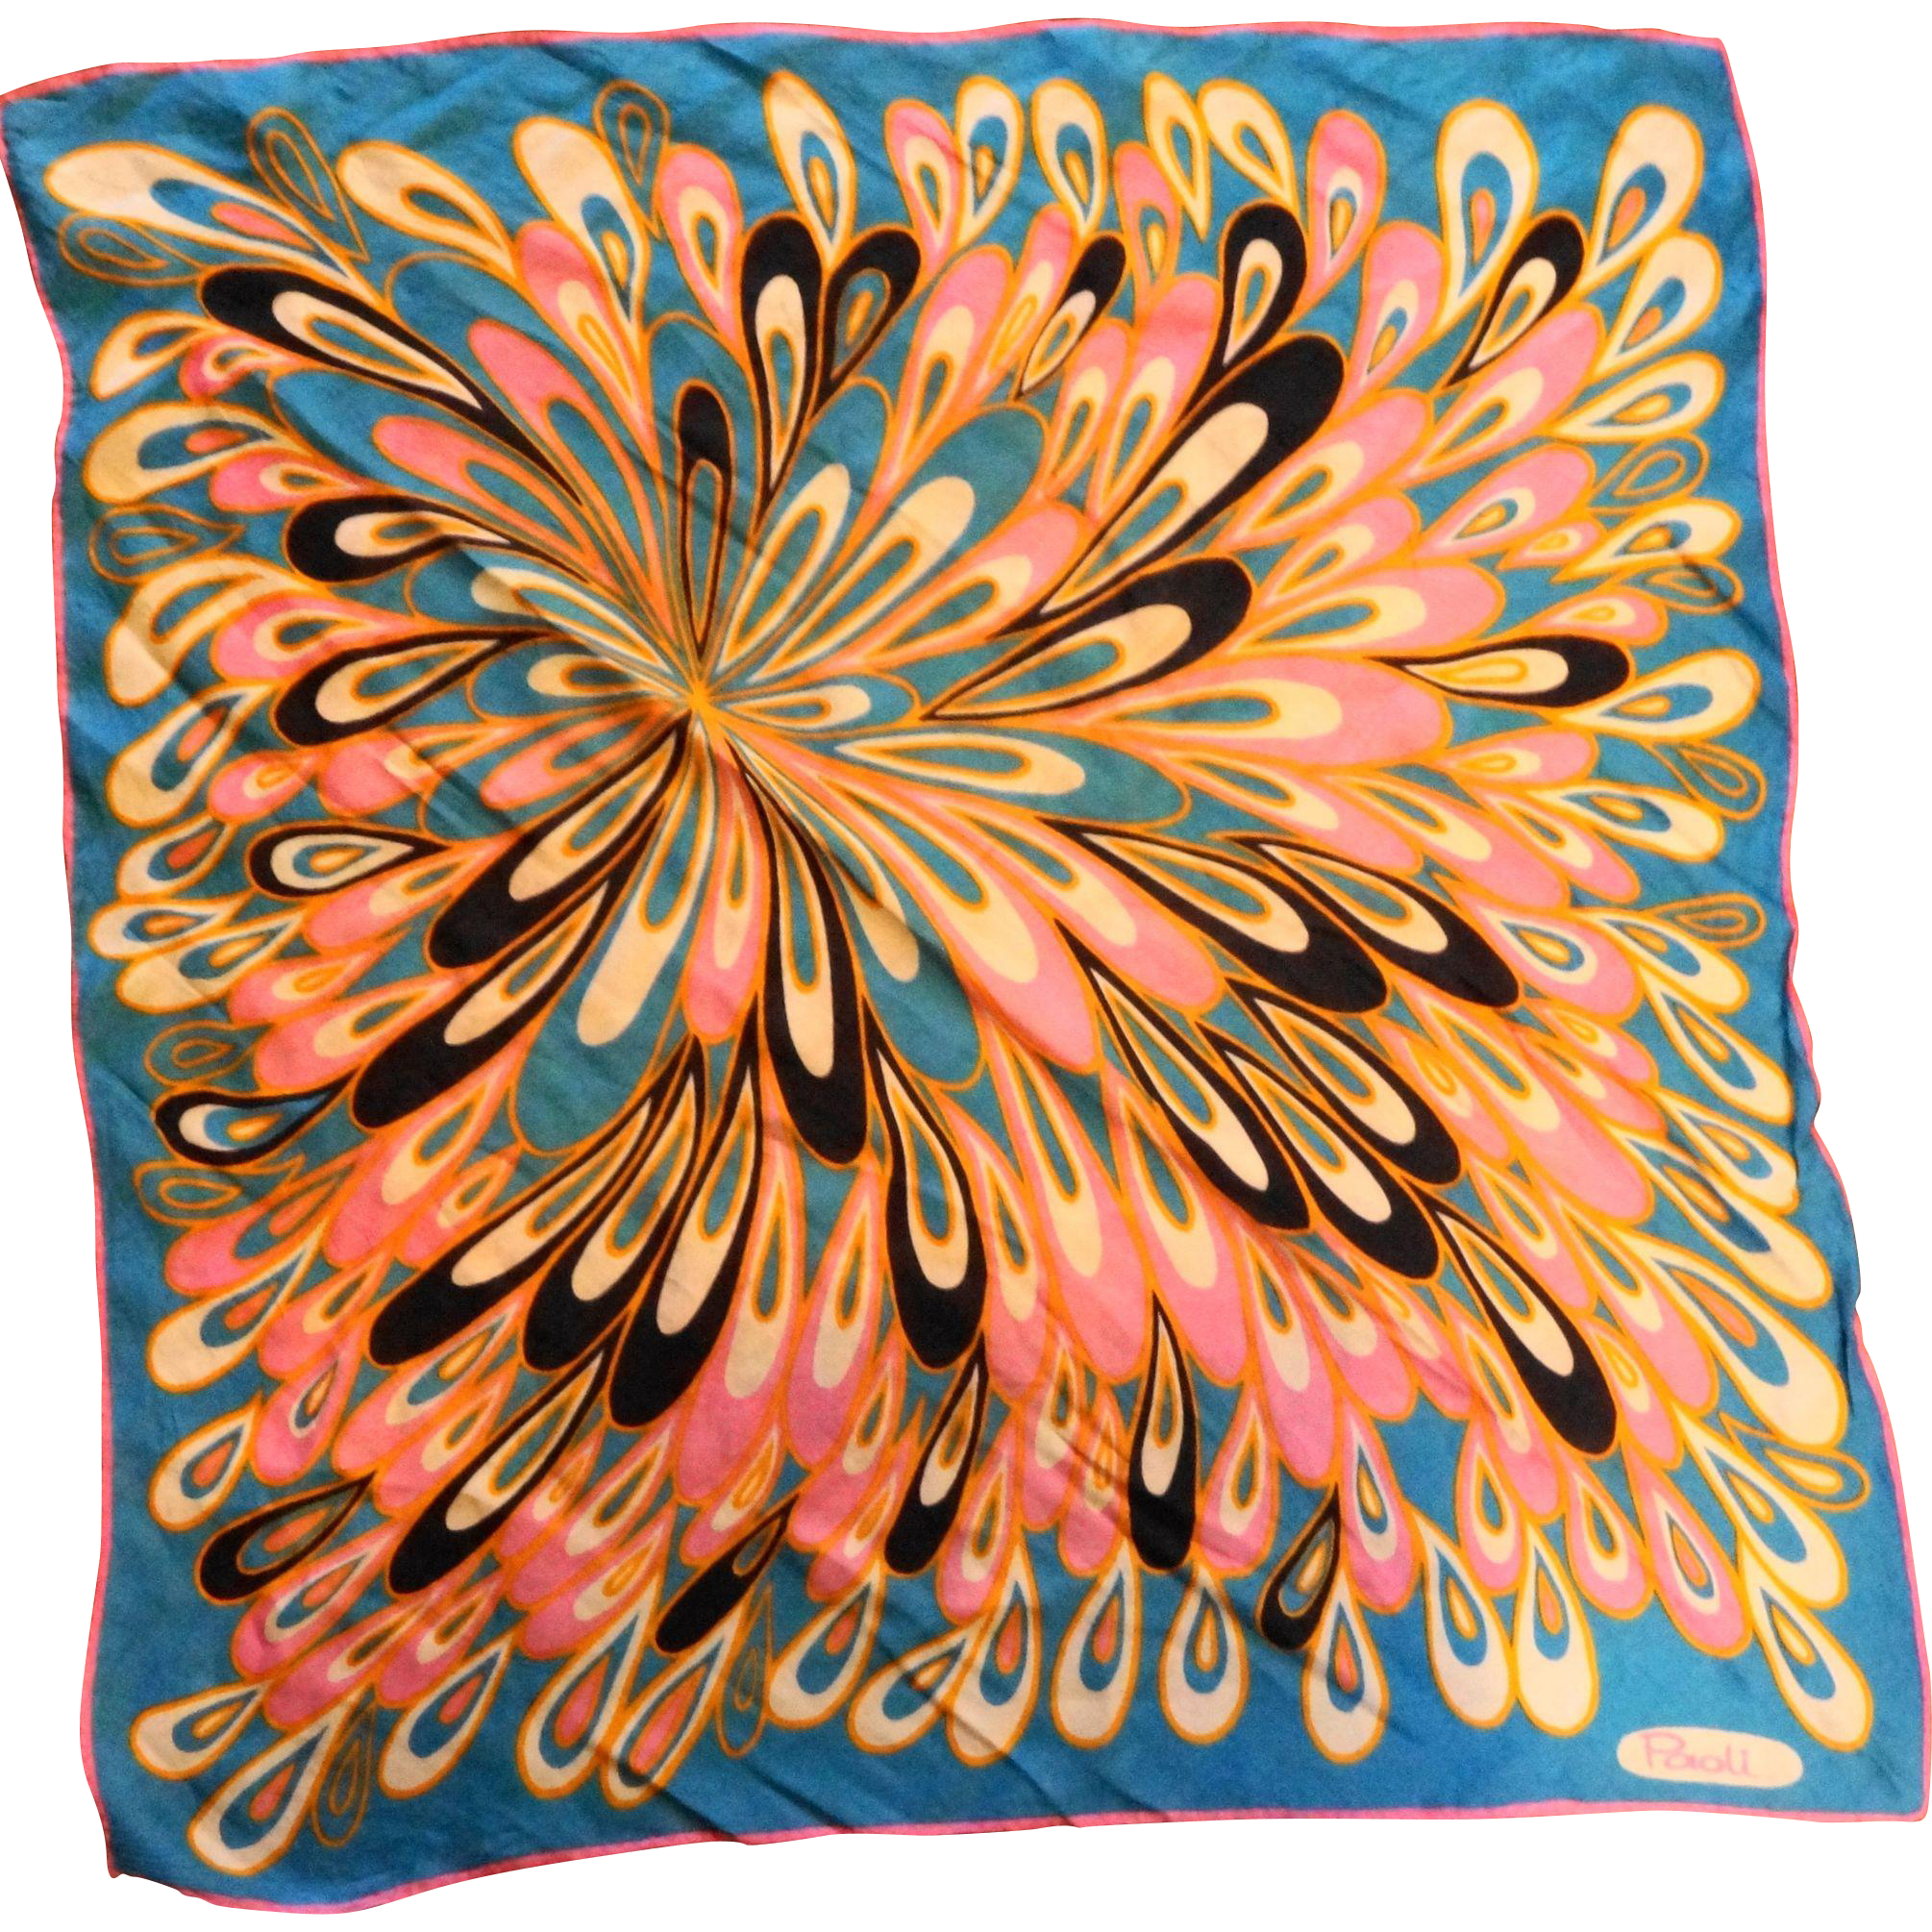 Paoli Op Art Peacock Feather PInk Blue Gold Square Scarf